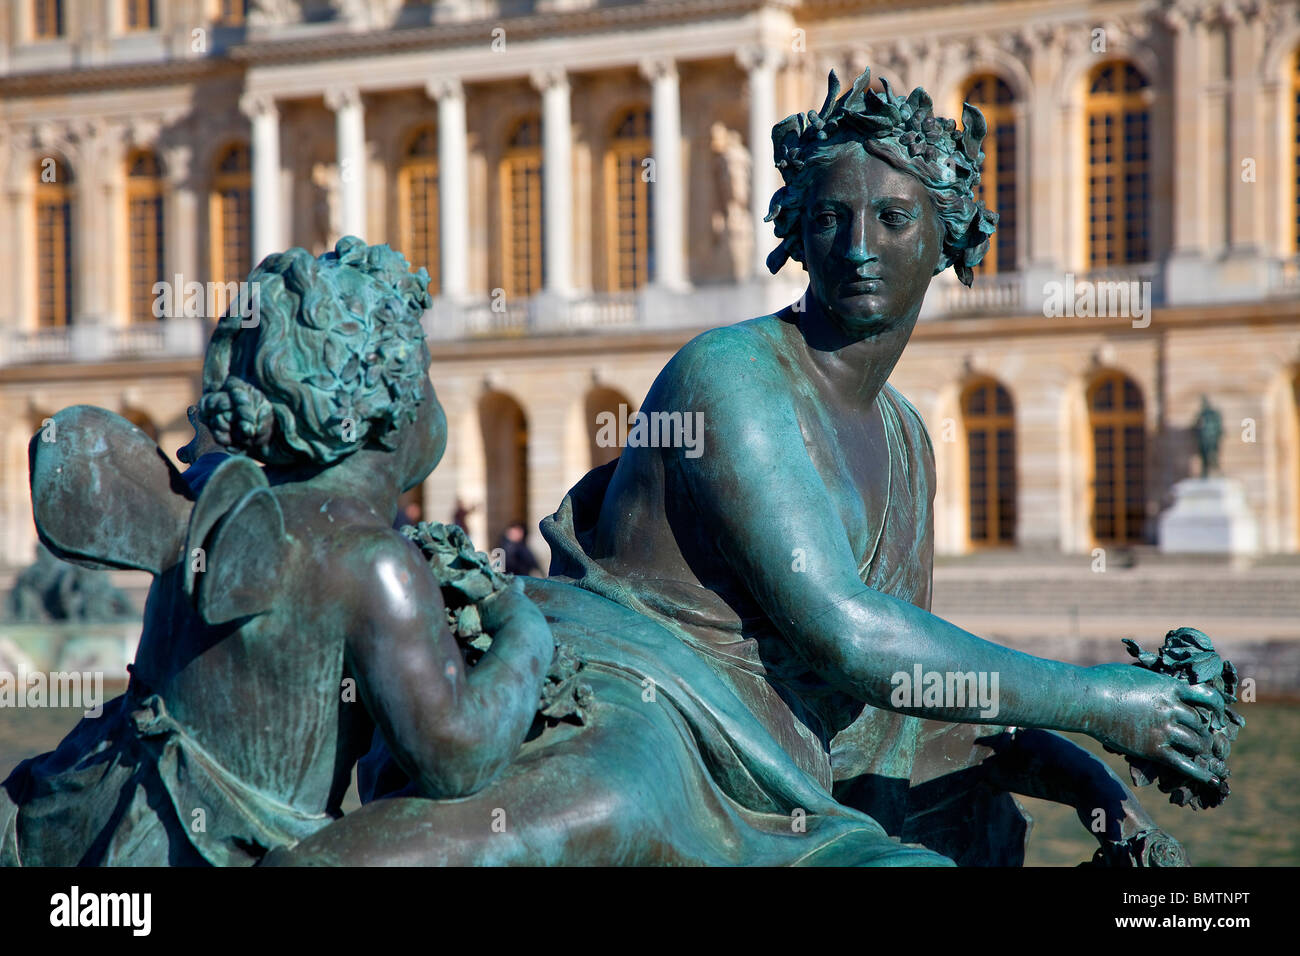 Bronze Sculpture at Fountain's Edge in Garden at Chateau de Versailles - Stock Image